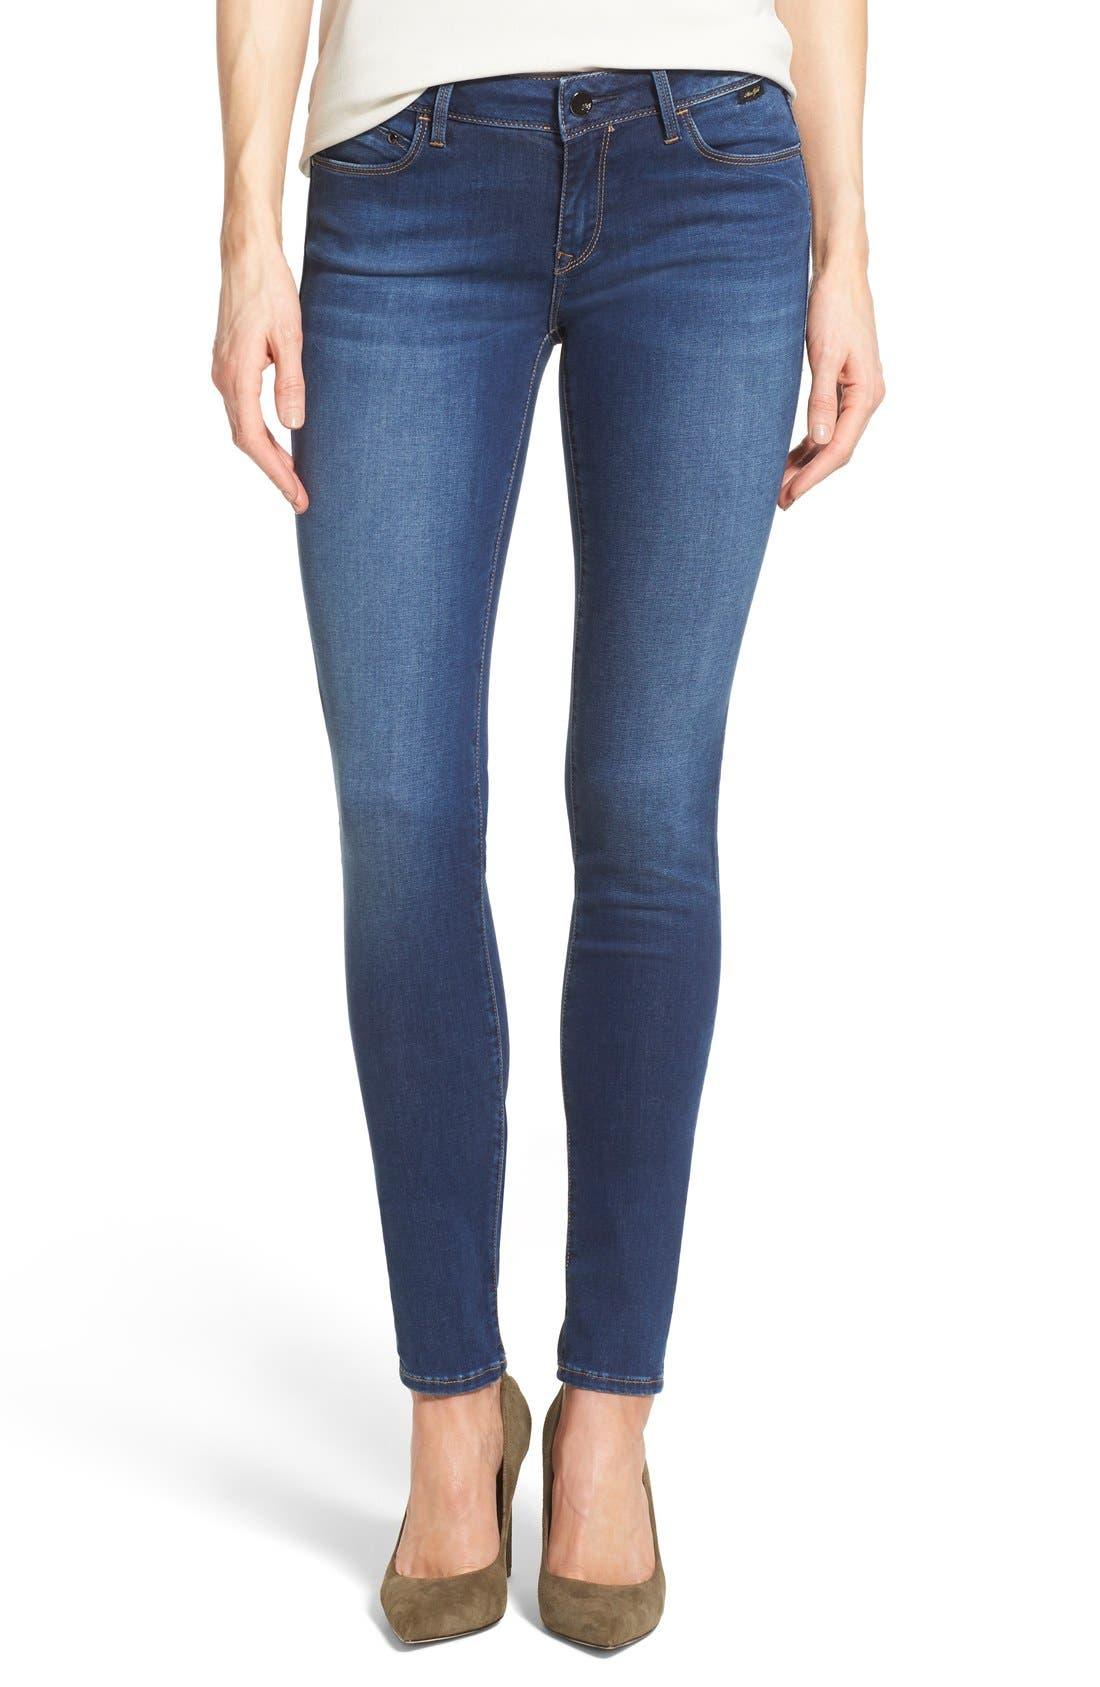 Gold 'Adriana' Stretch Super Skinny Jeans,                             Main thumbnail 1, color,                             401